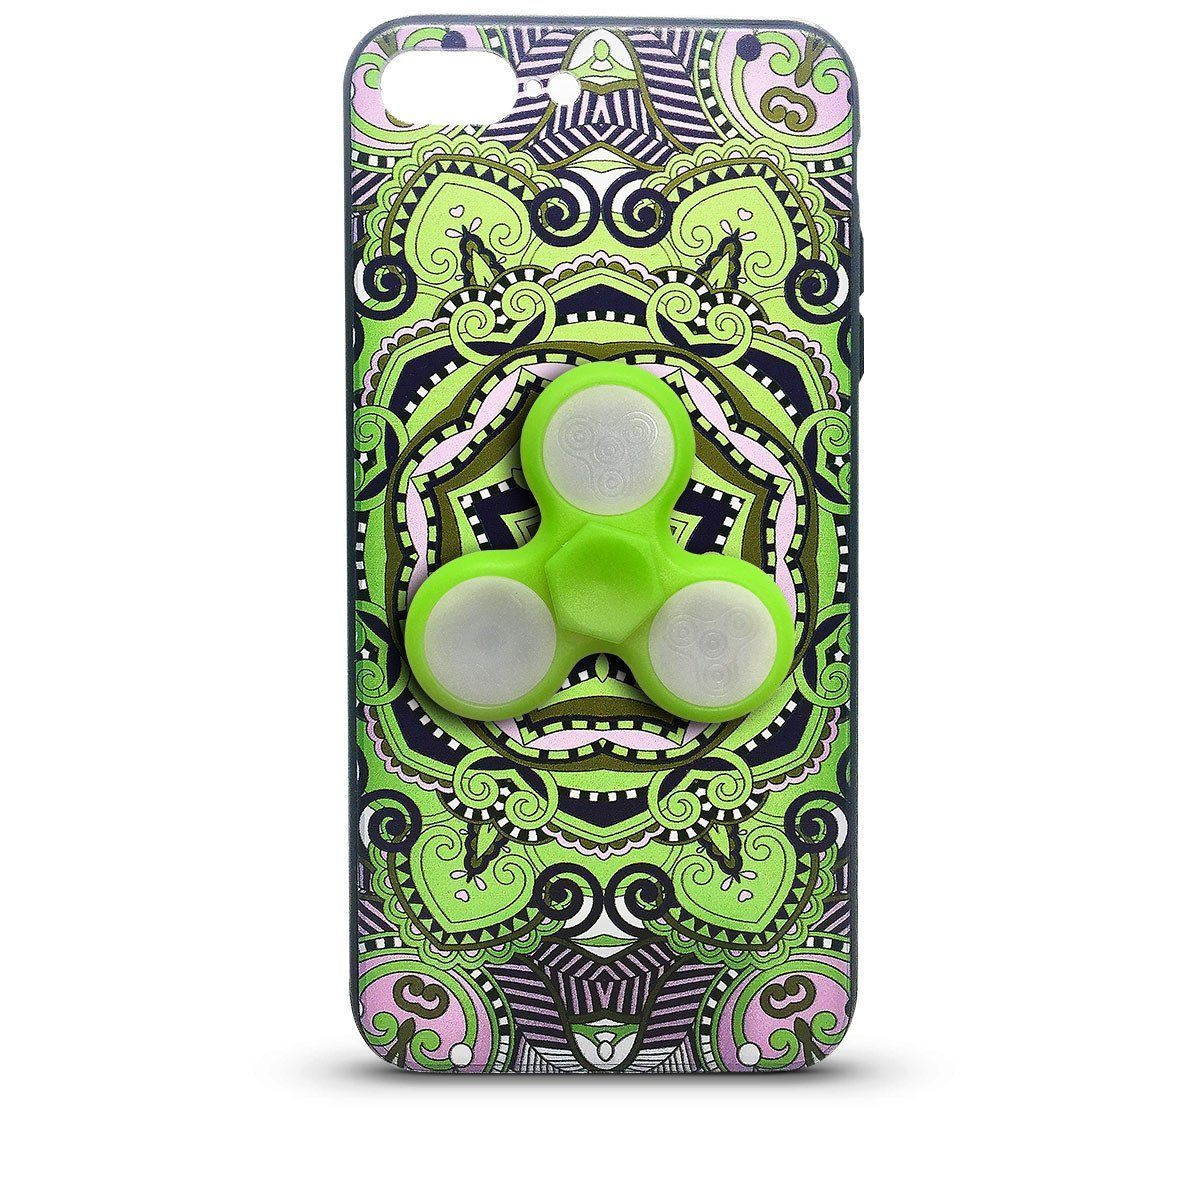 Fidget Case for iPhone 6P - Green